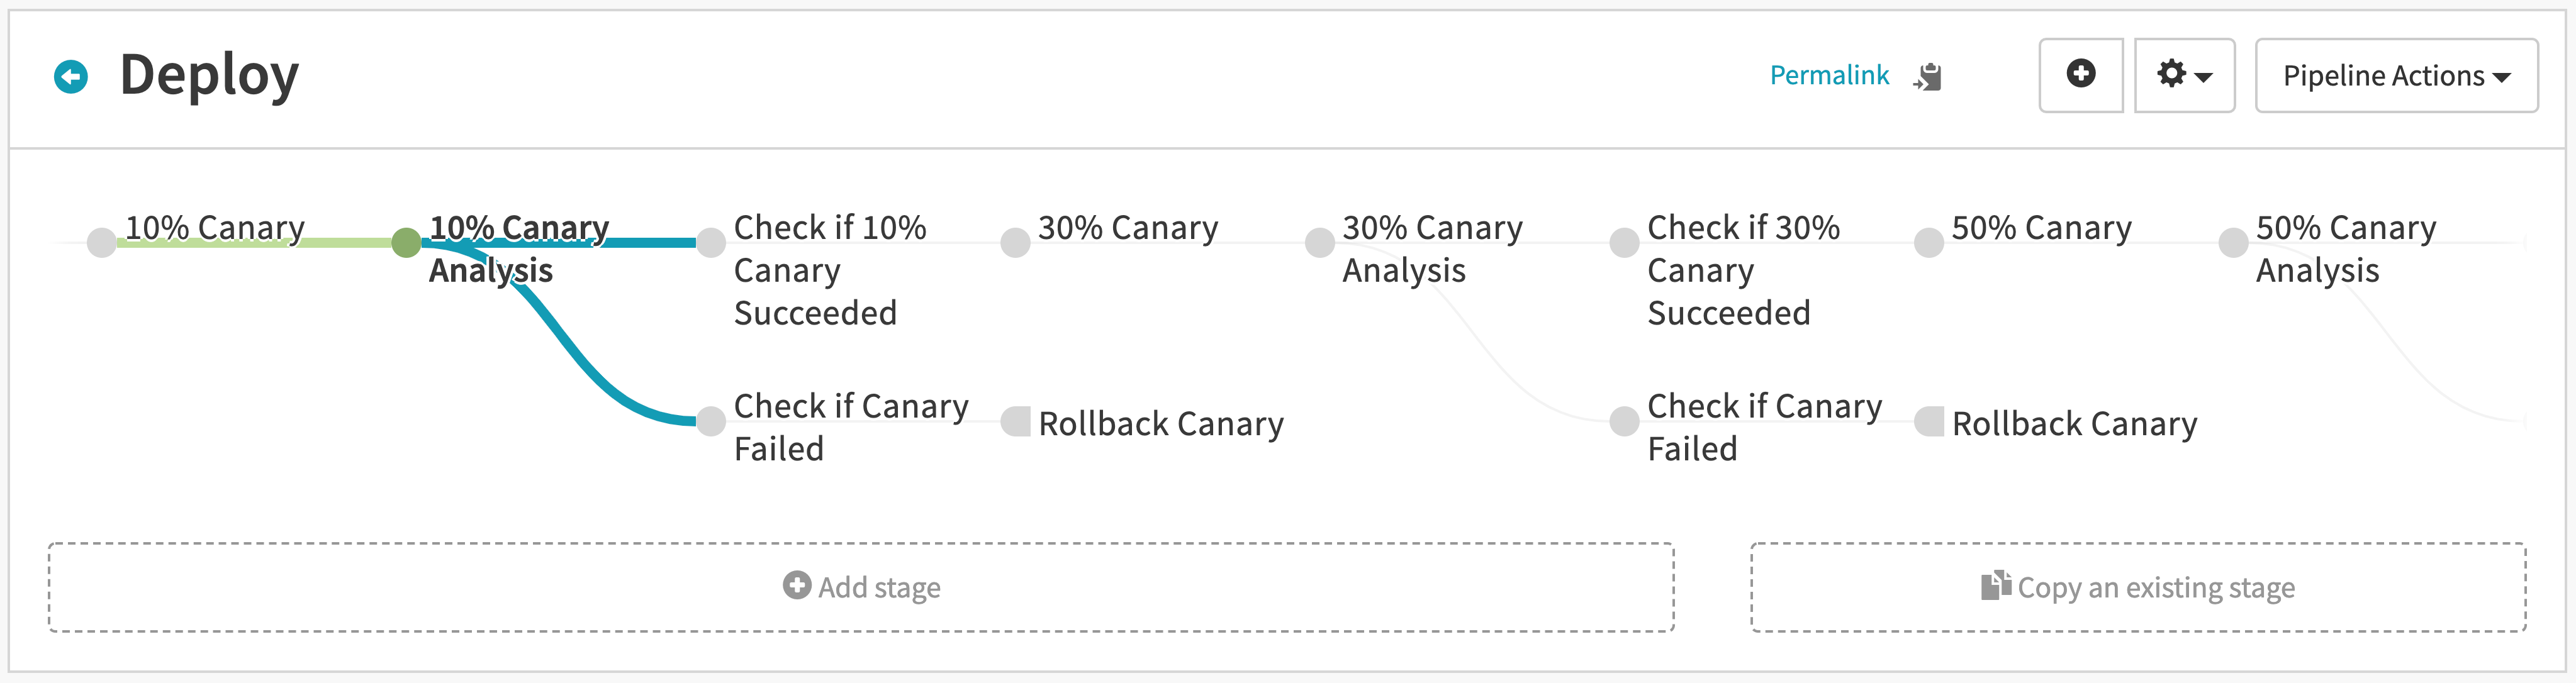 Deployment pipeline increments traffic to canary by 20% each stage